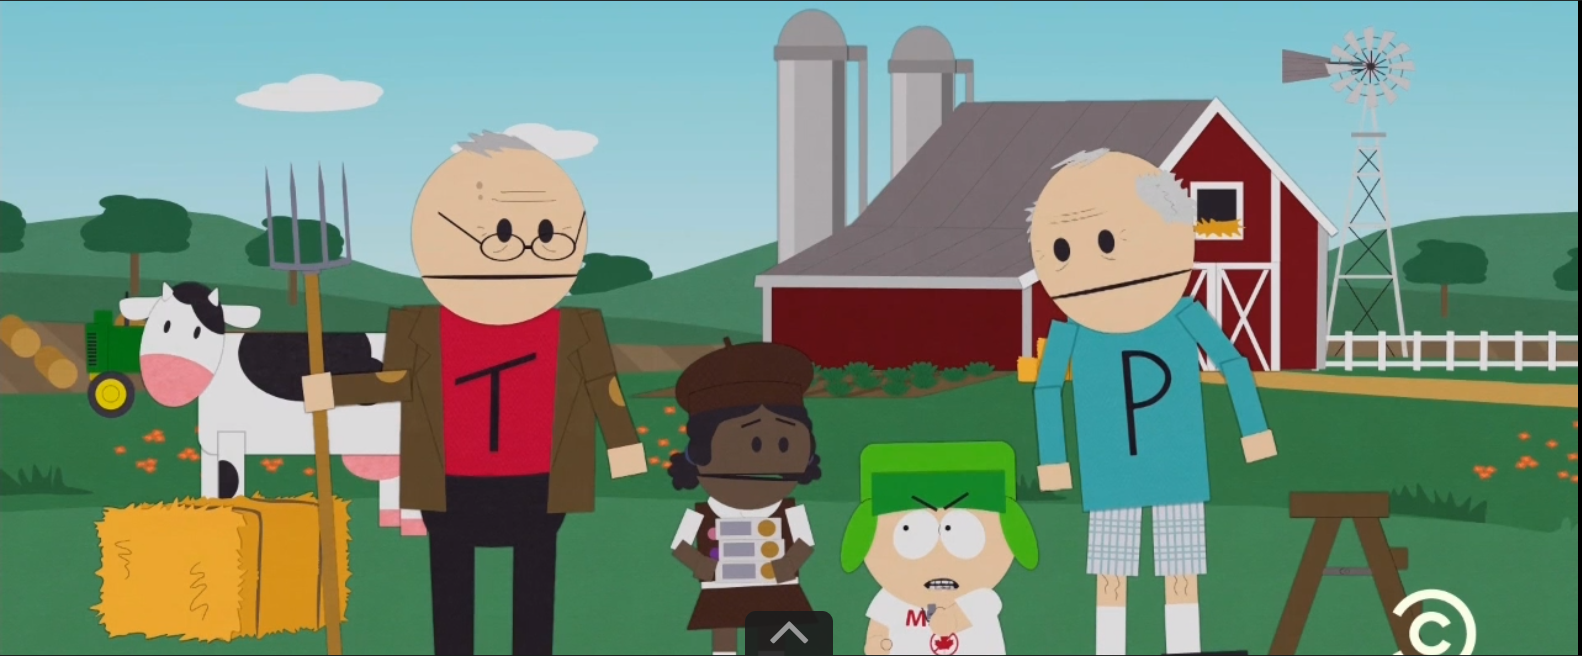 terrance and phillip Recapping South Park: SUPER HARD PCness Is No Substitute for Human Decency